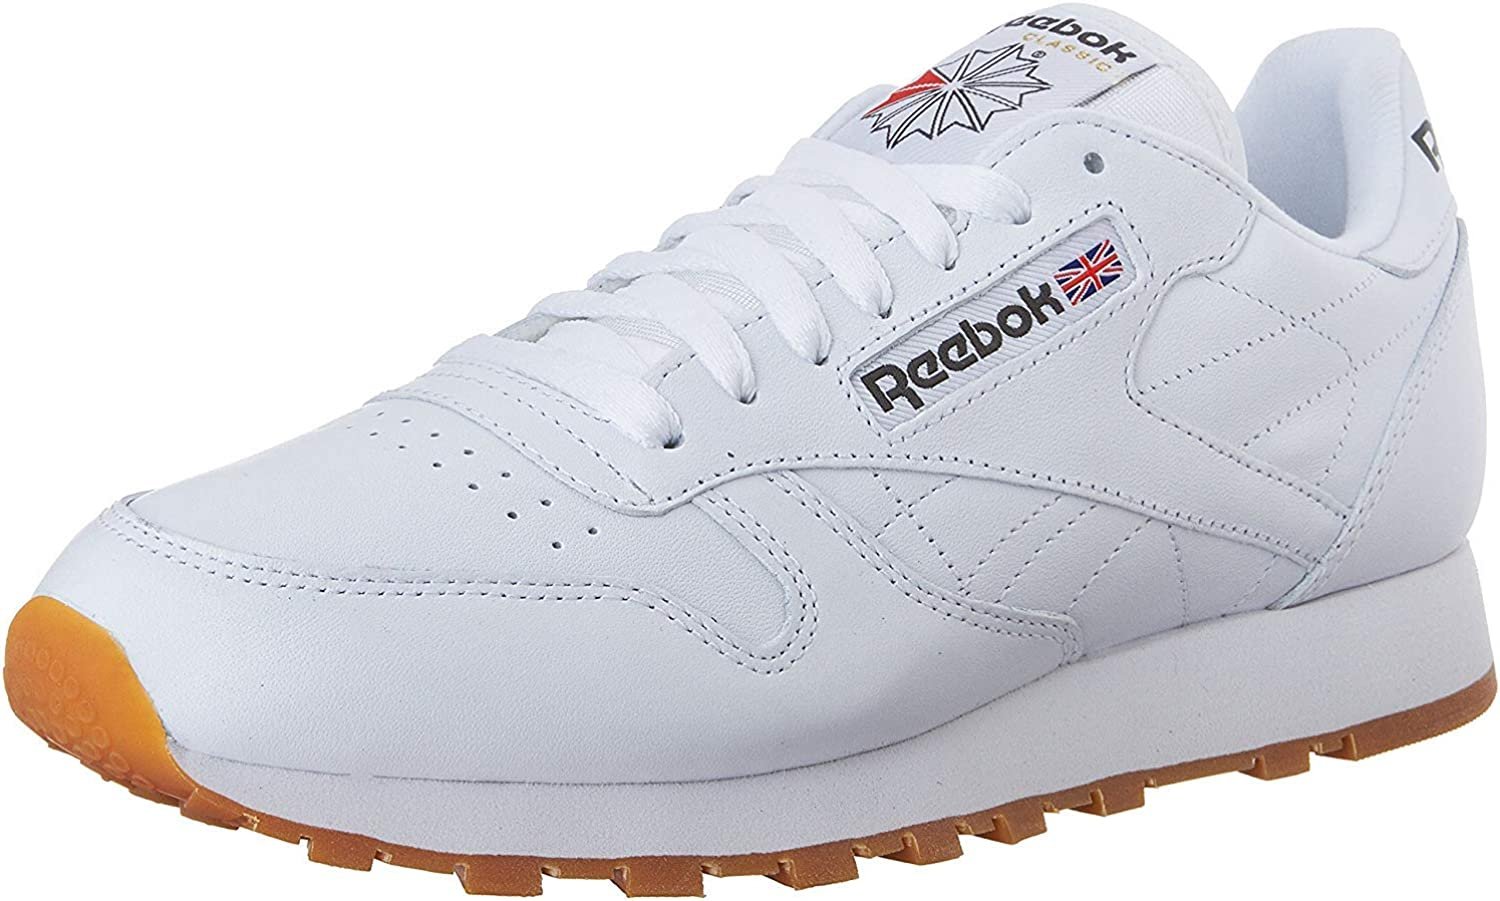 Vintage Sneakers, Retro Designs for Women Reebok Mens Classic Leather Fashion Sneakers White/Gum 11.5 M US $55.99 AT vintagedancer.com